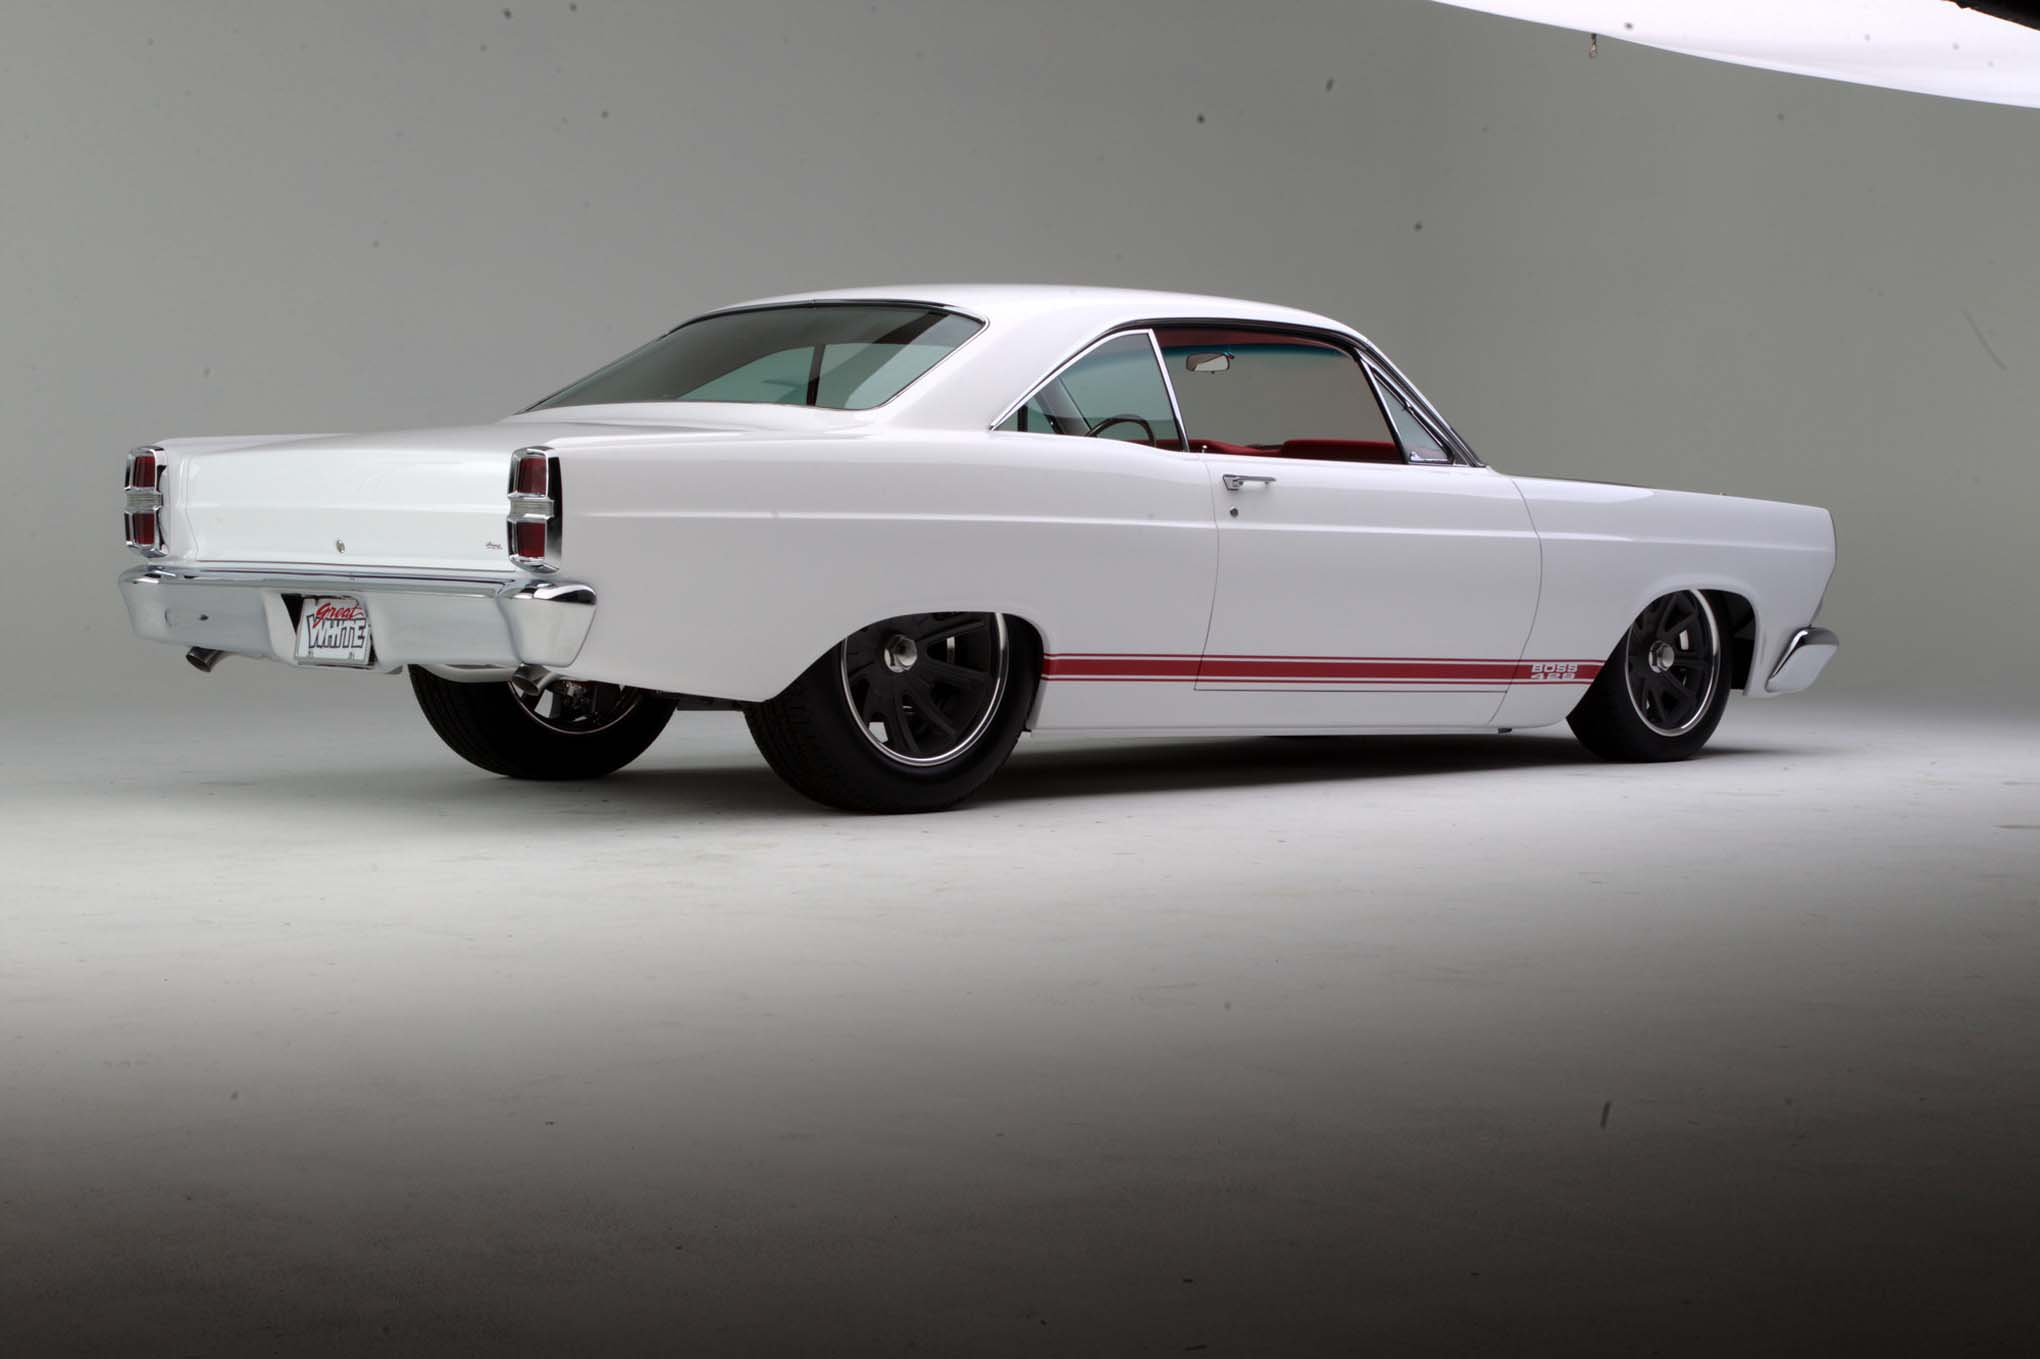 Ford Fairlane Wallpapers Vehicles Hq Ford Fairlane Pictures 4k Wallpapers 2019